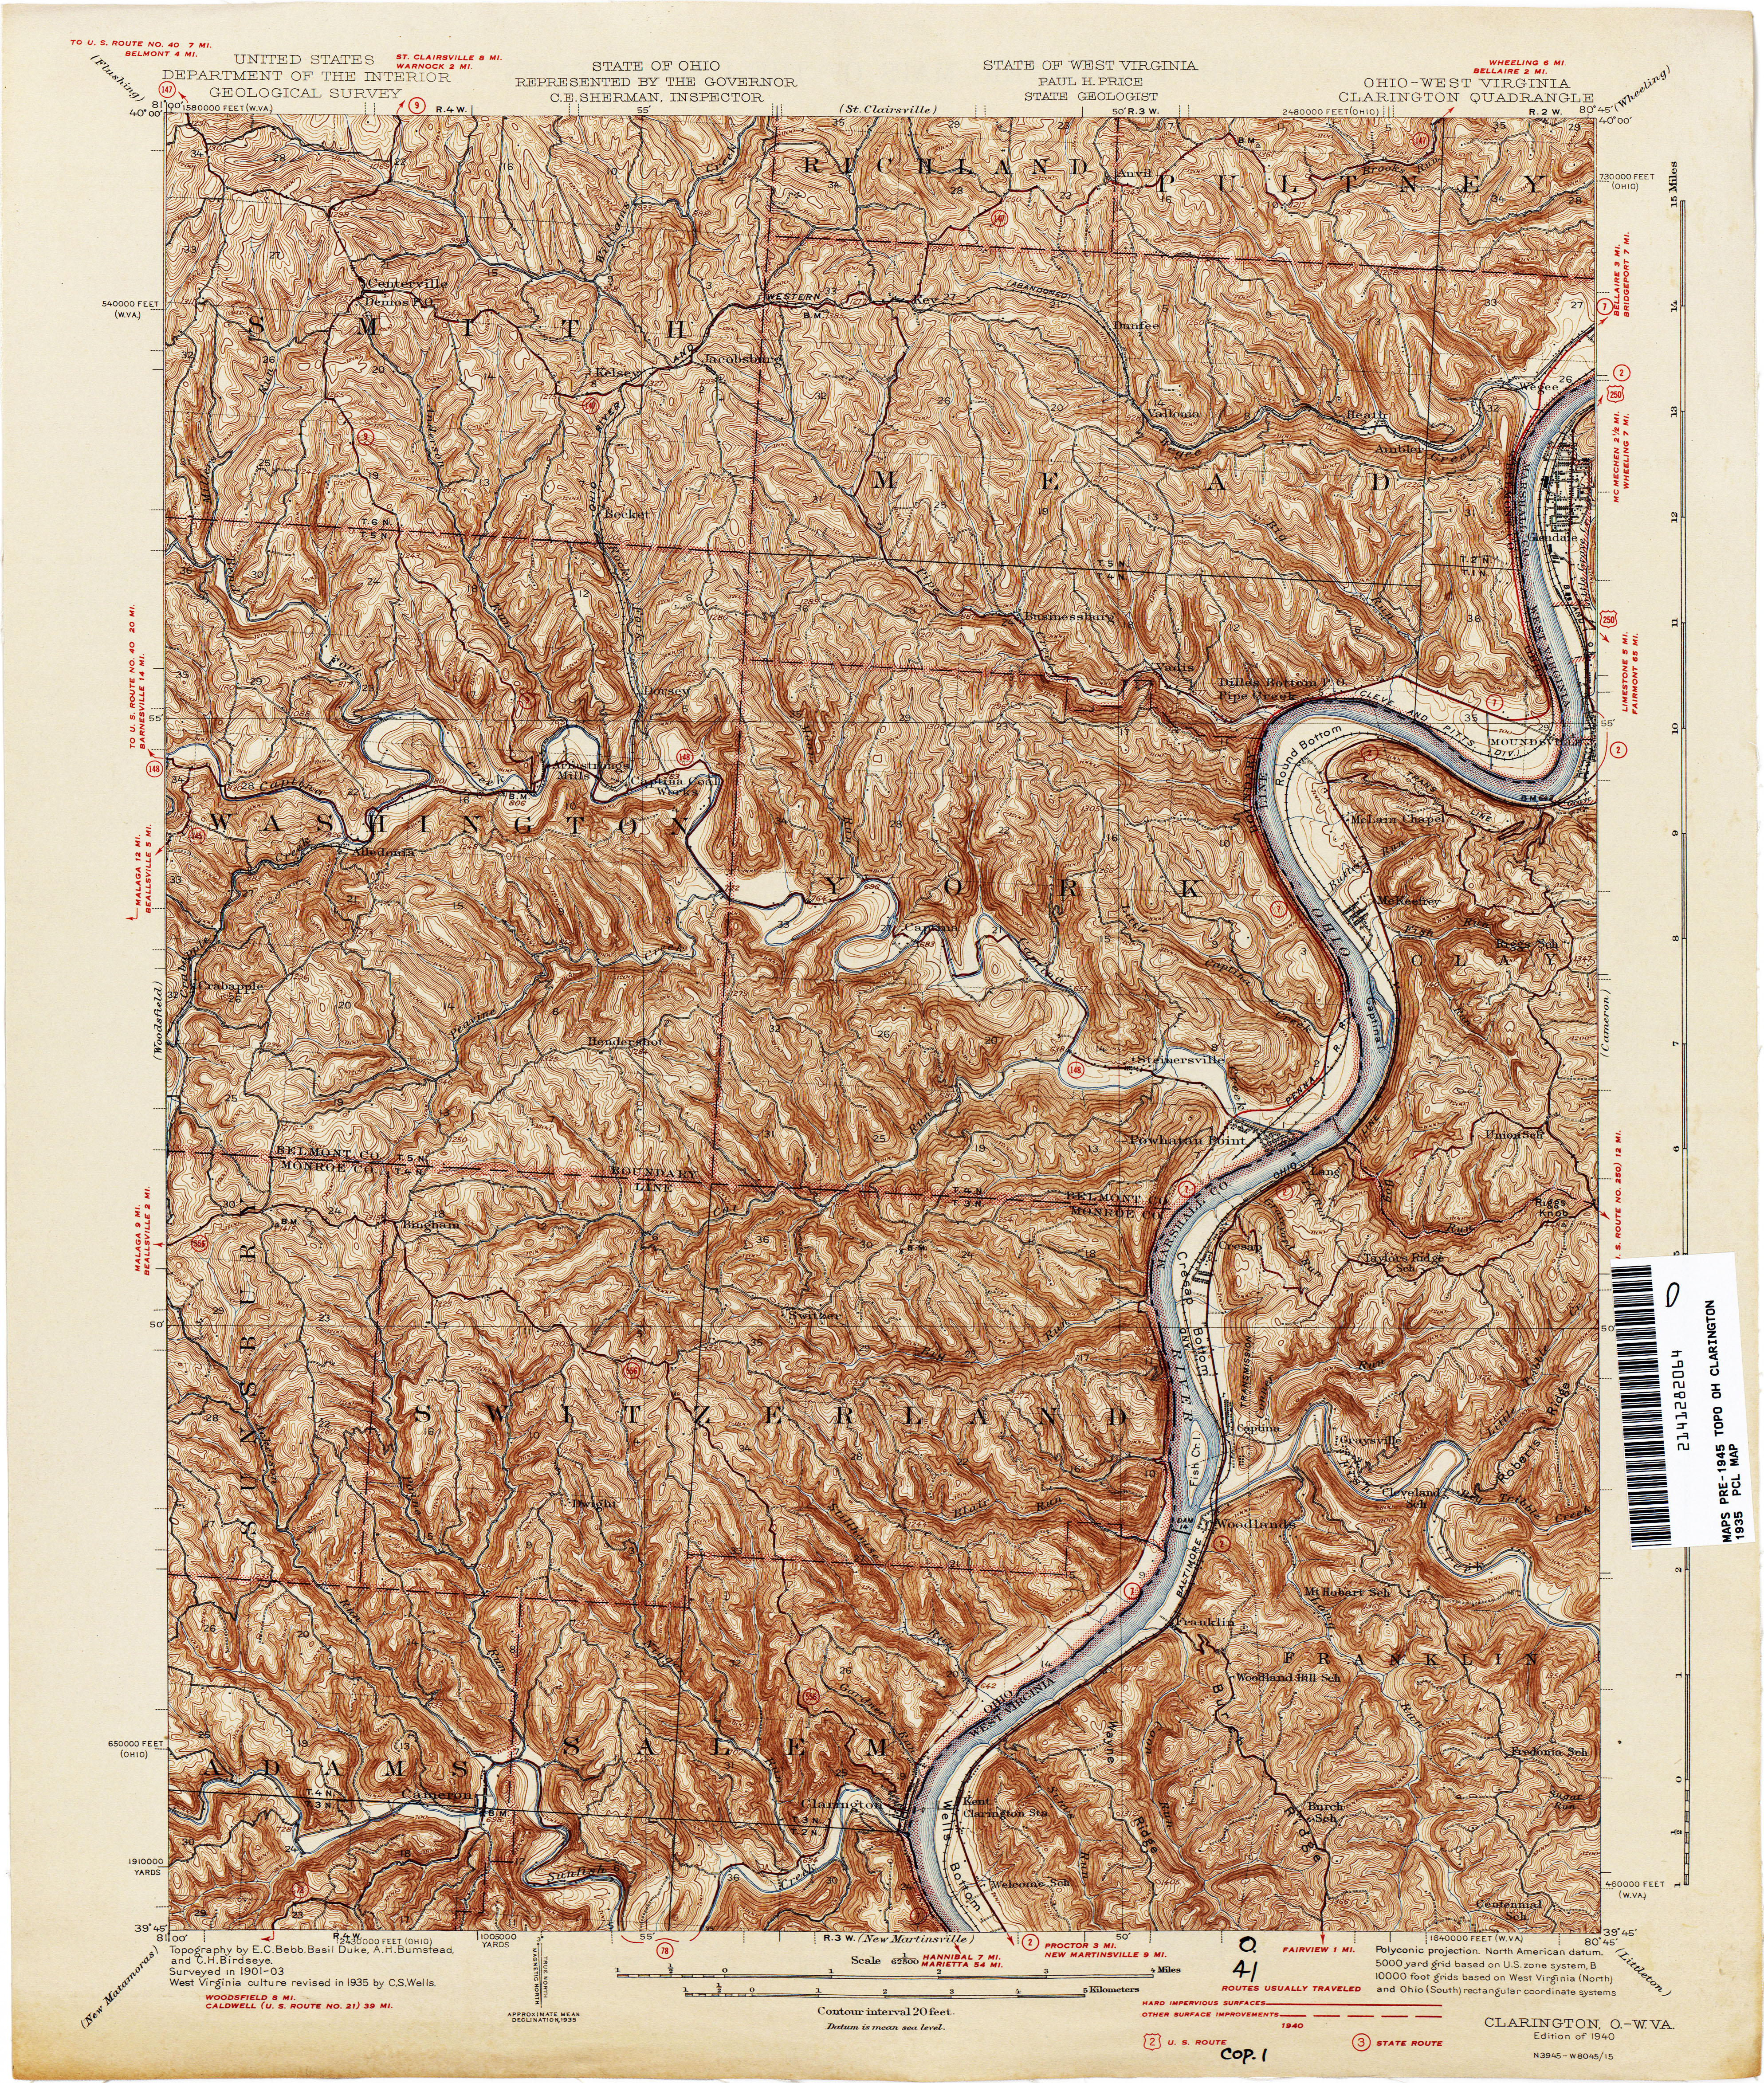 West Virginia Historical Topographic Maps - Perry-Castañeda Map ...